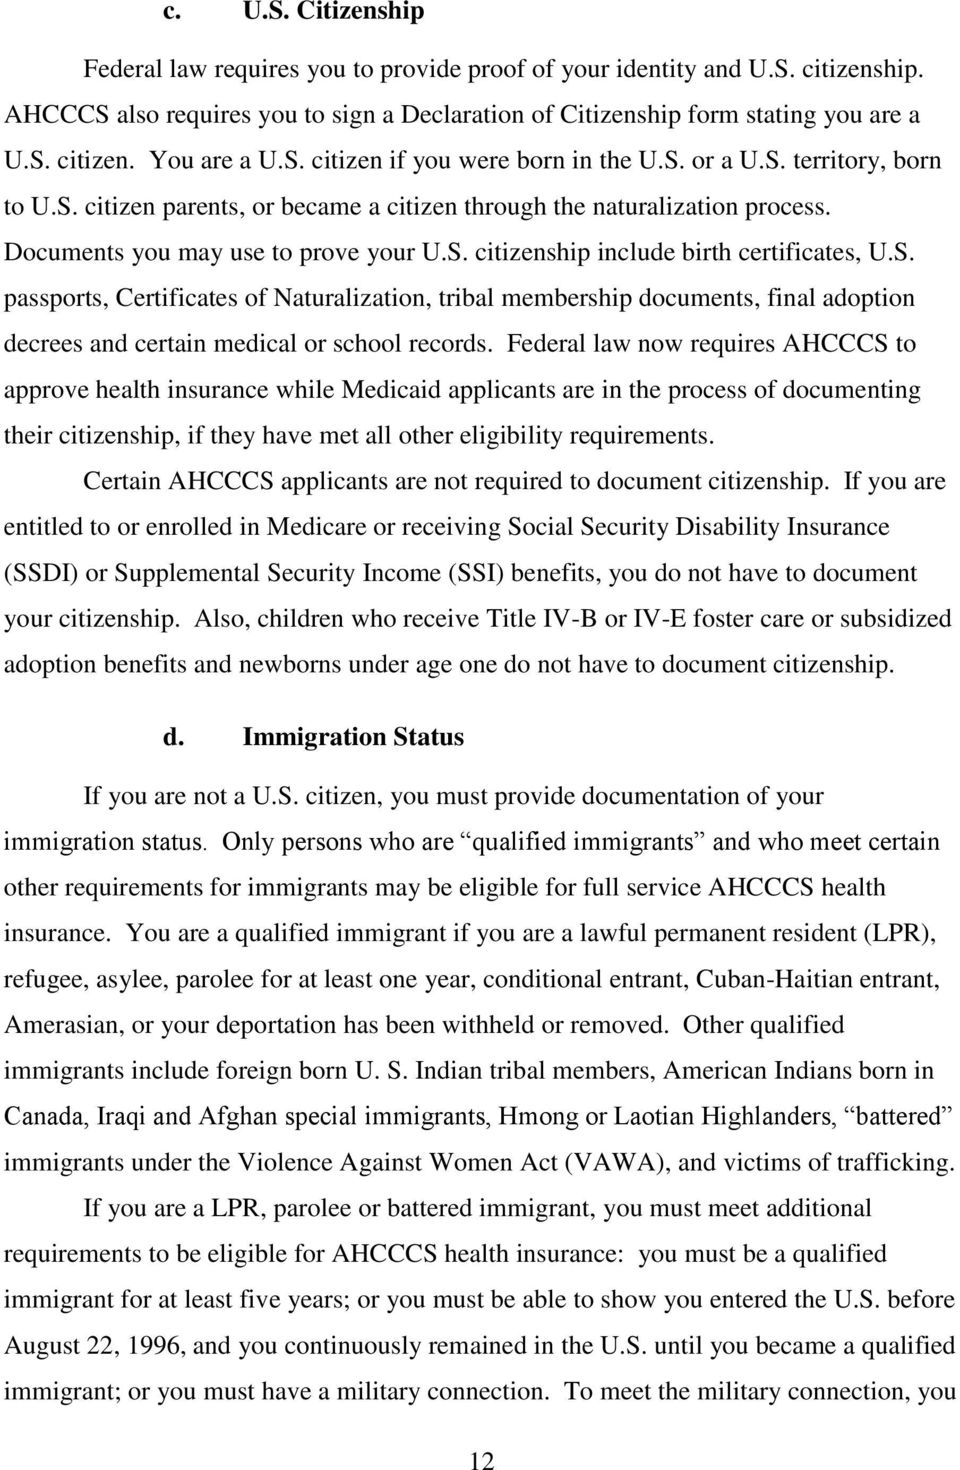 S. passports, Certificates of Naturalization, tribal membership documents, final adoption decrees and certain medical or school records.